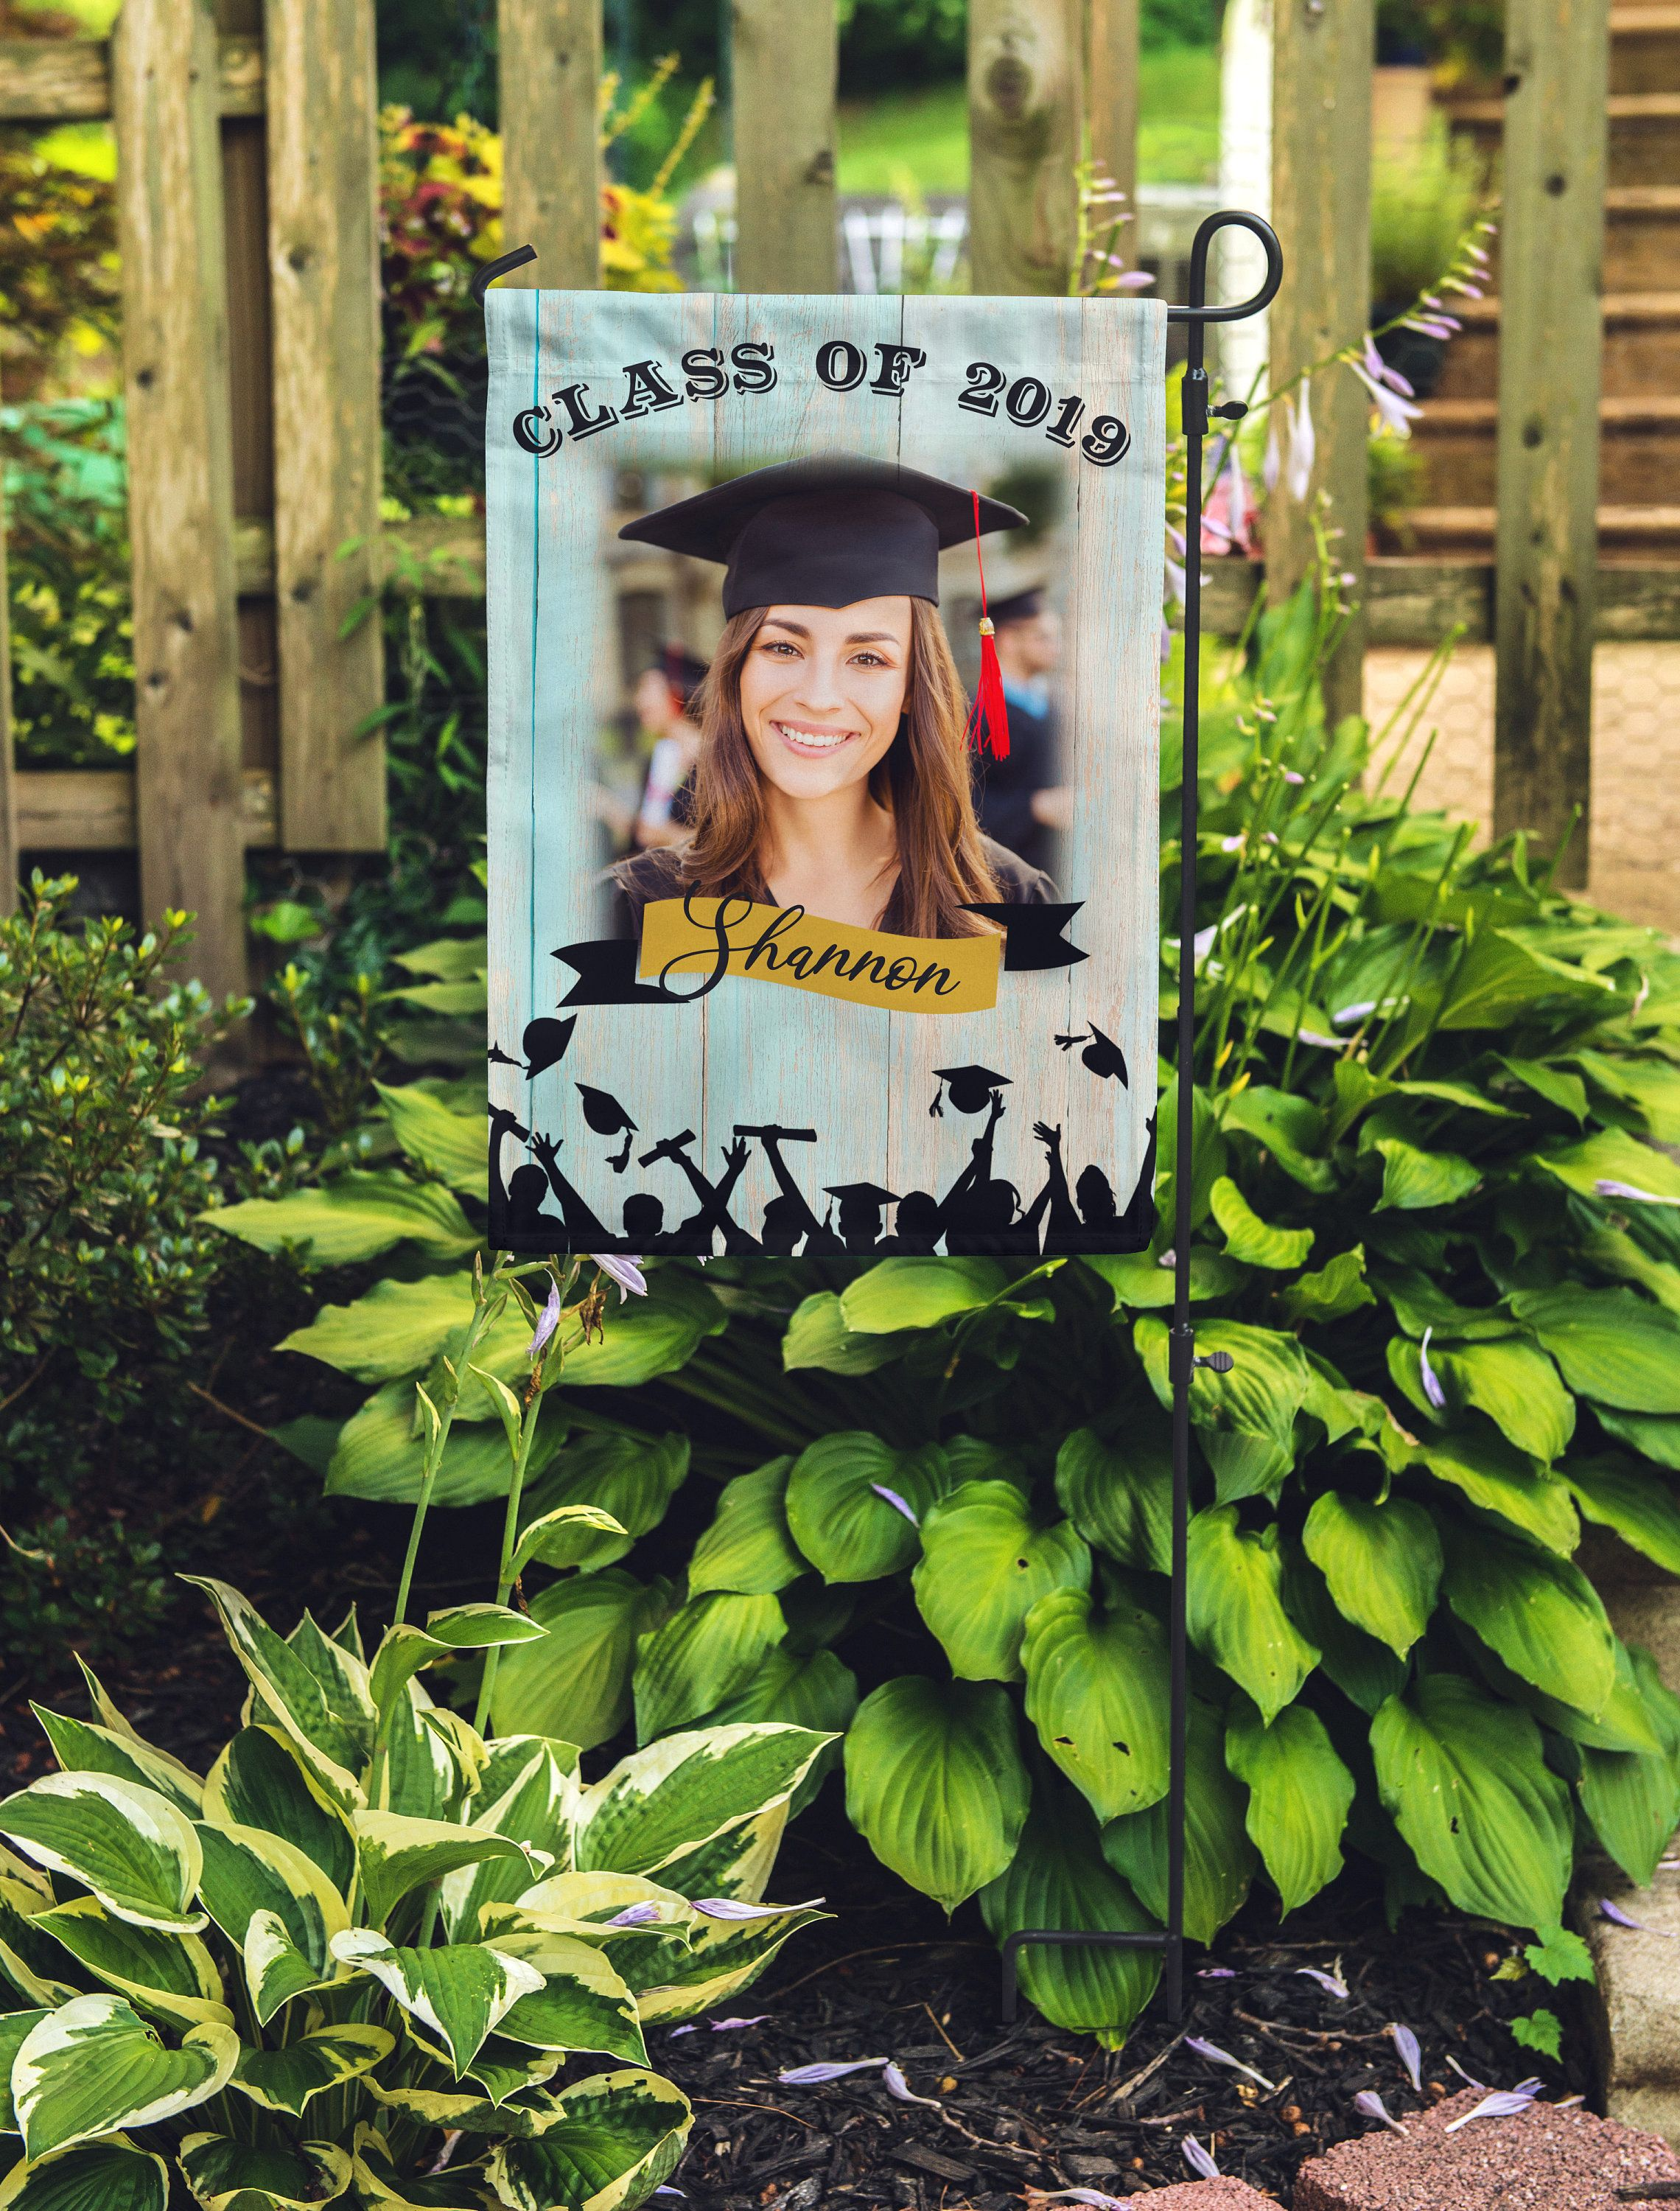 Personalized Graduation 2019 Garden Flag Graduate Photo Etsy Personalized Graduation Graduation Center Pieces Mother In Law Gifts